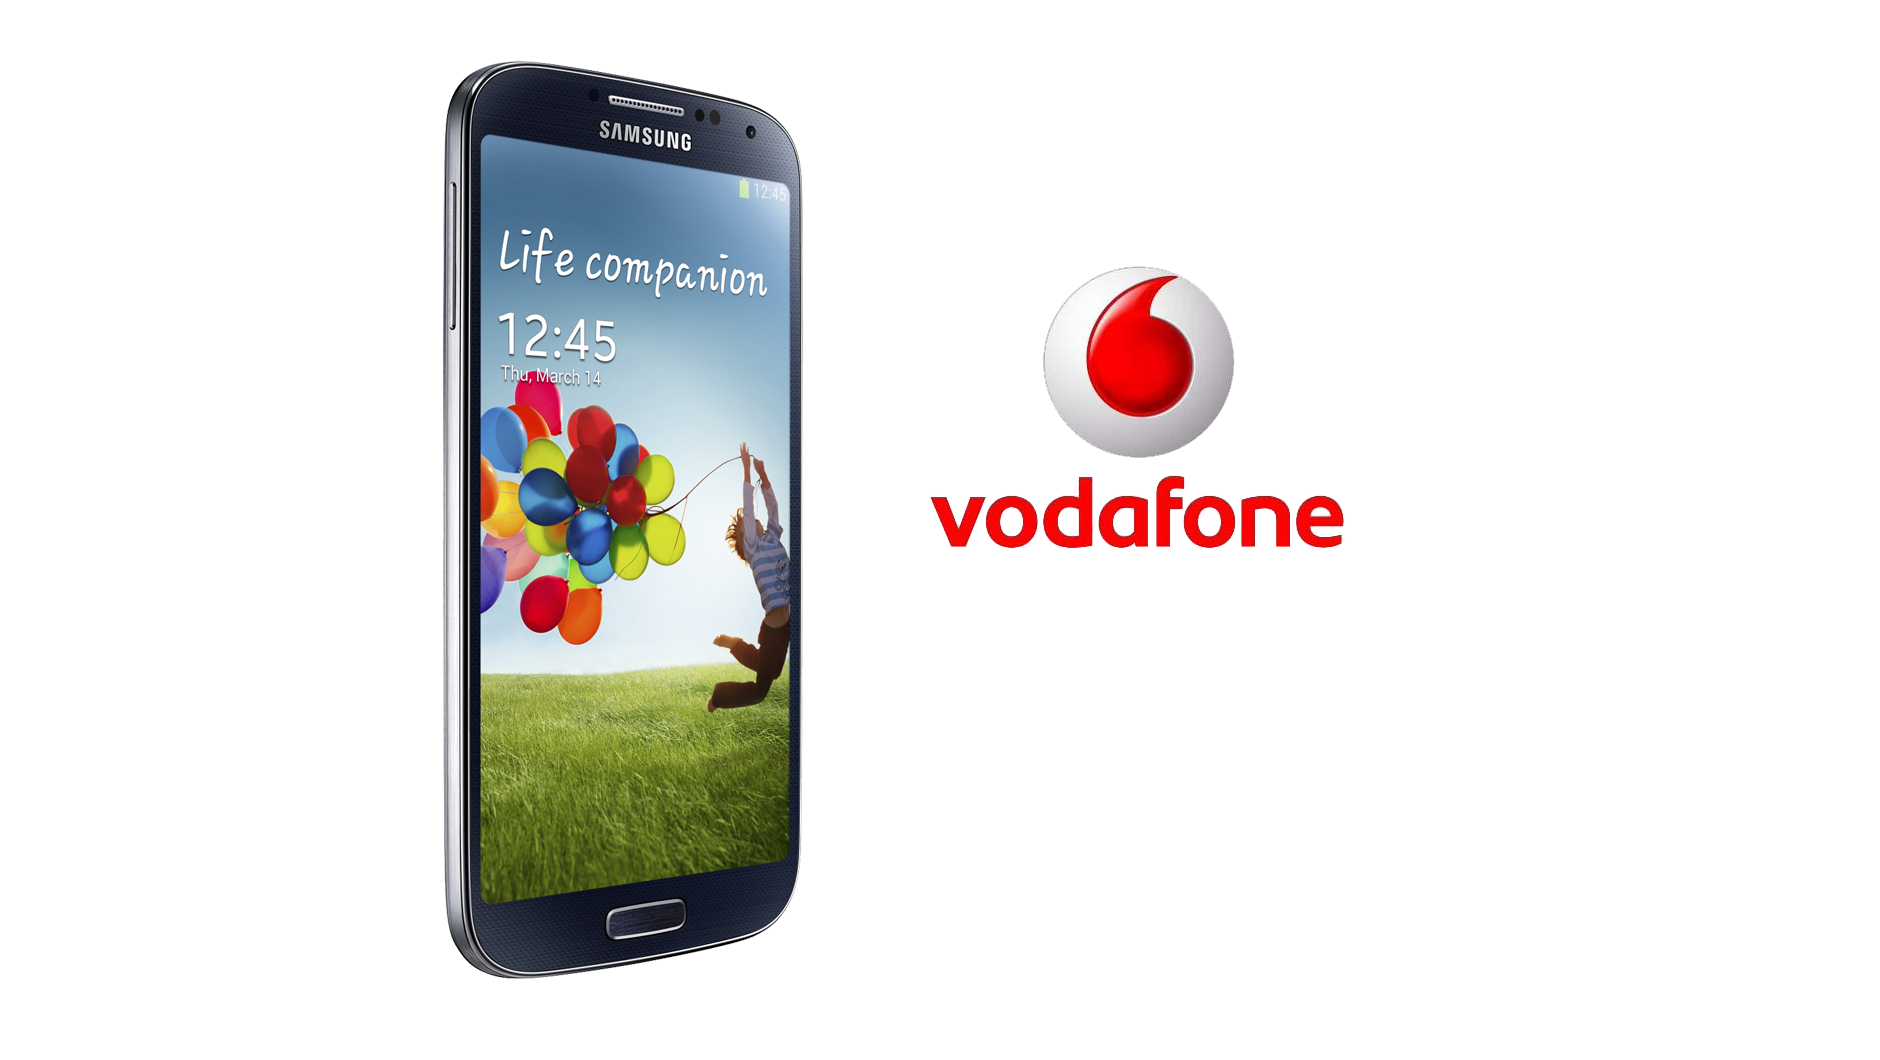 vodafone 39 s all in one plans for samsung galaxy s4 detailed. Black Bedroom Furniture Sets. Home Design Ideas